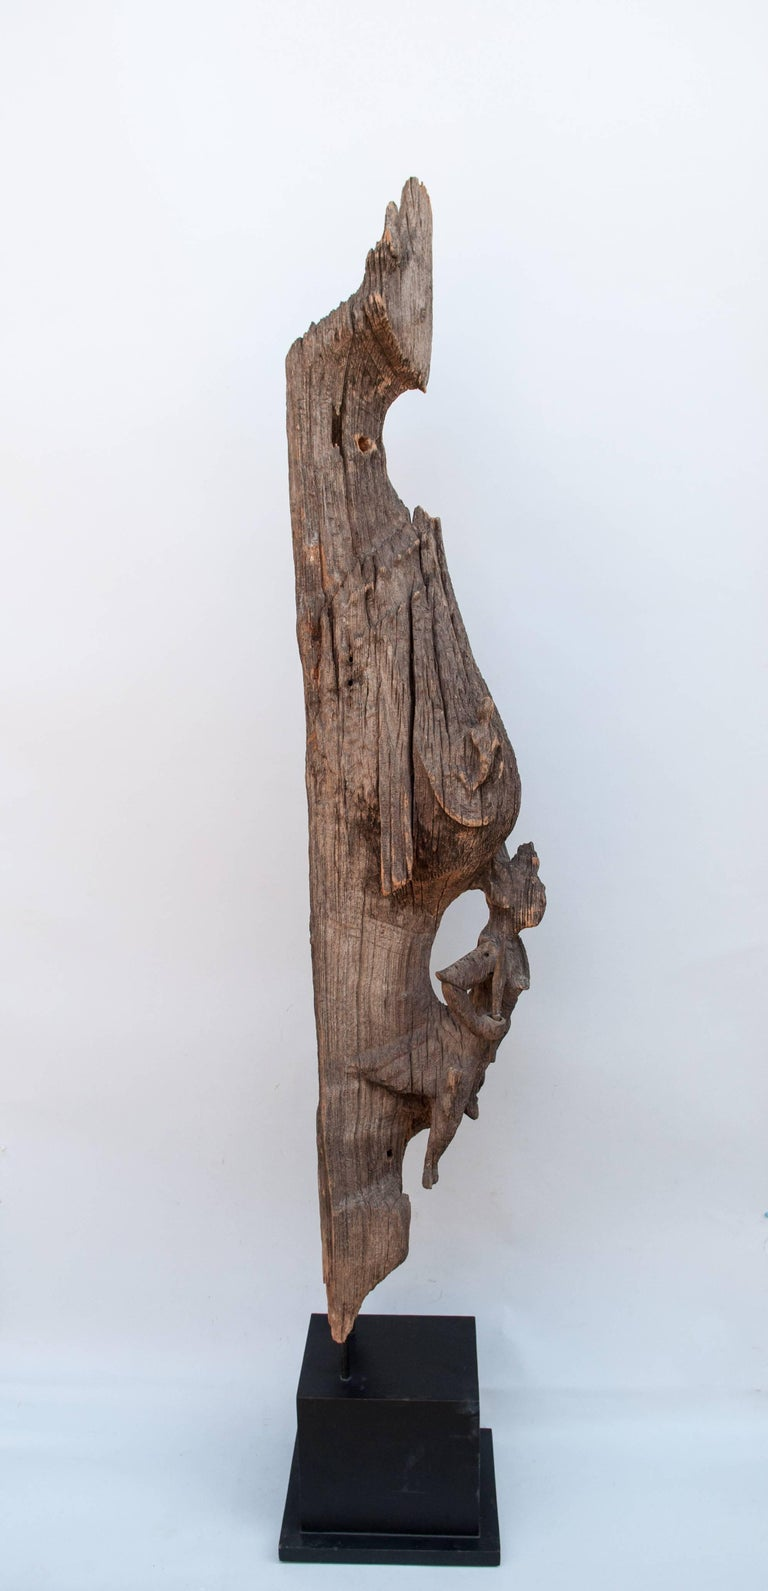 Burmese Chofa Roof Finial from Burma, Carved and Eroded Teak Wood, Early 20th Century For Sale